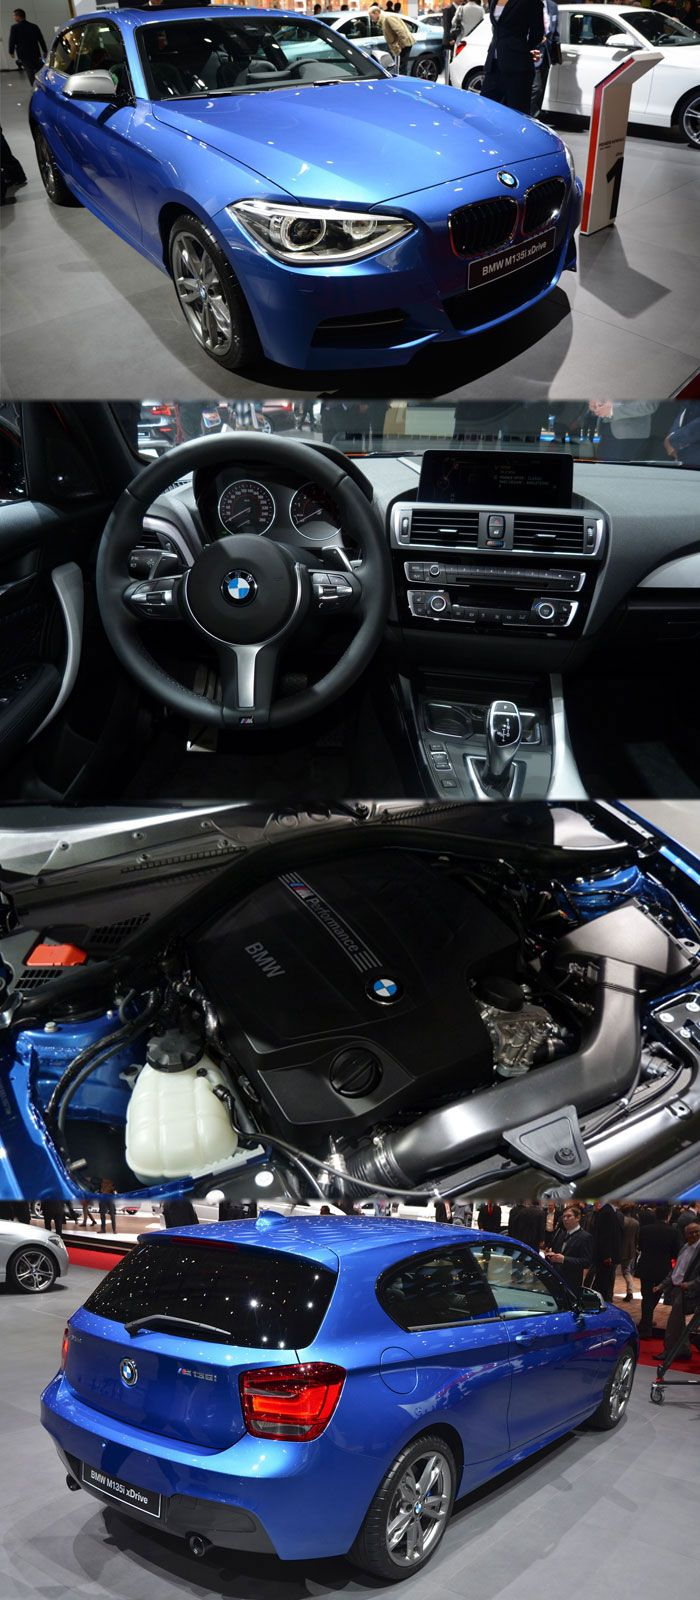 How BMW M135i xDrive Engine is the Engine of Dreams Read more details at: http://www.reconditionengines.co.uk/rec-make.asp?part=reconditioned-bmw-engine